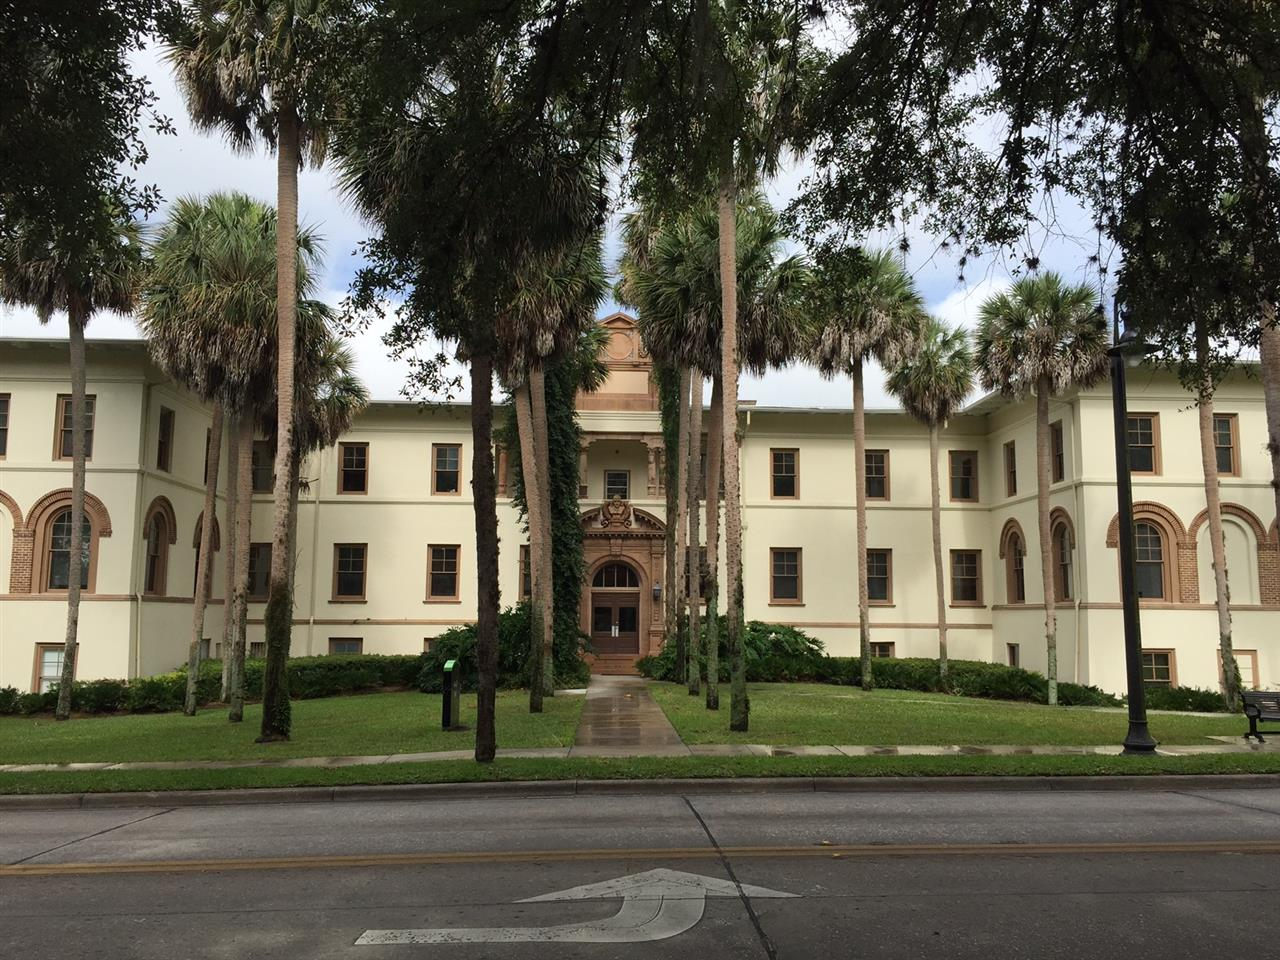 #Deland, FL #Stetson University #Flagler Hall